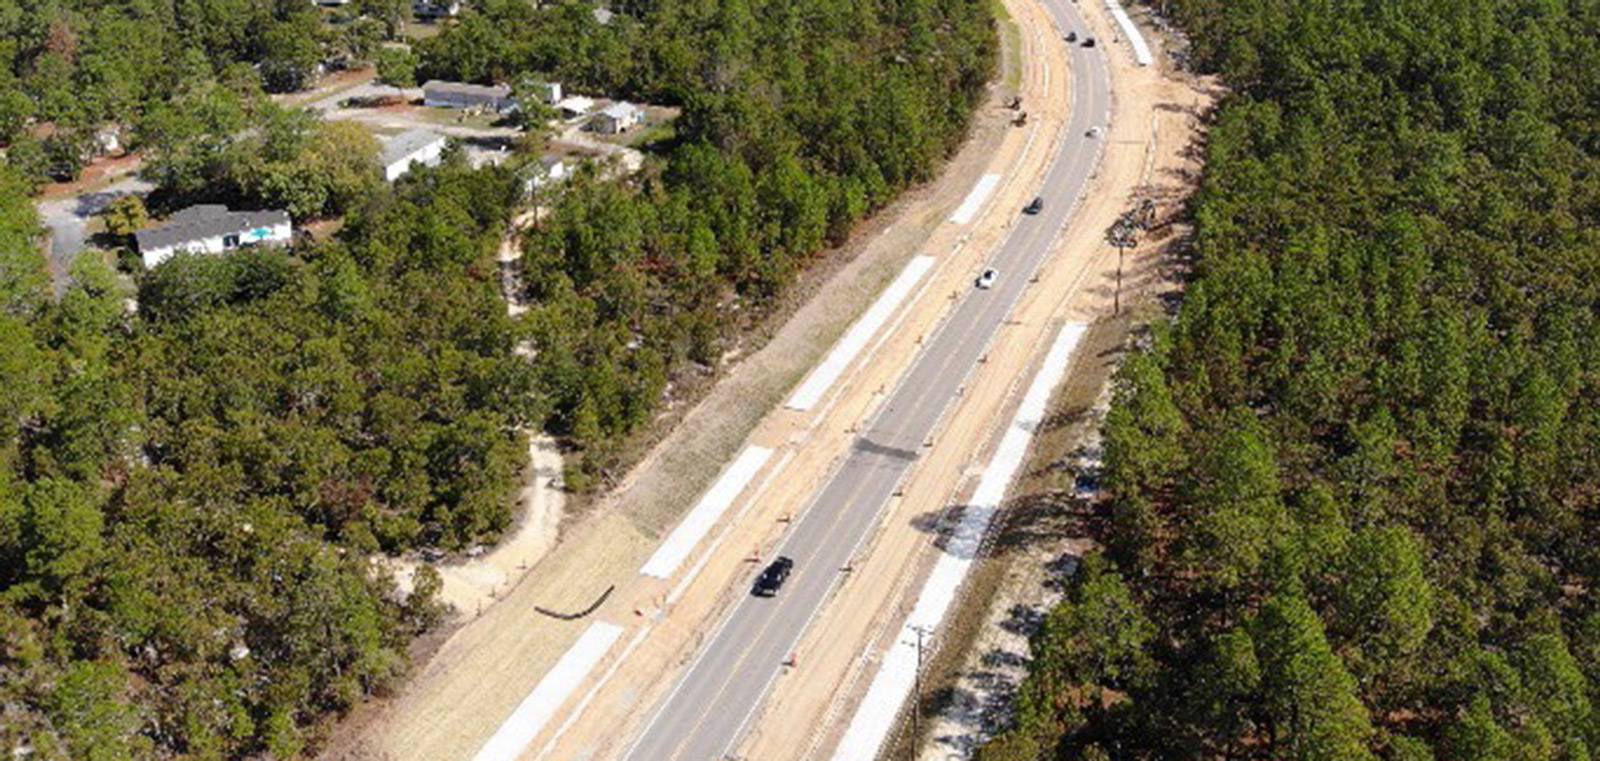 S-52 CLEMSON ROAD WIDENING RICHLAND COUNTY, SC